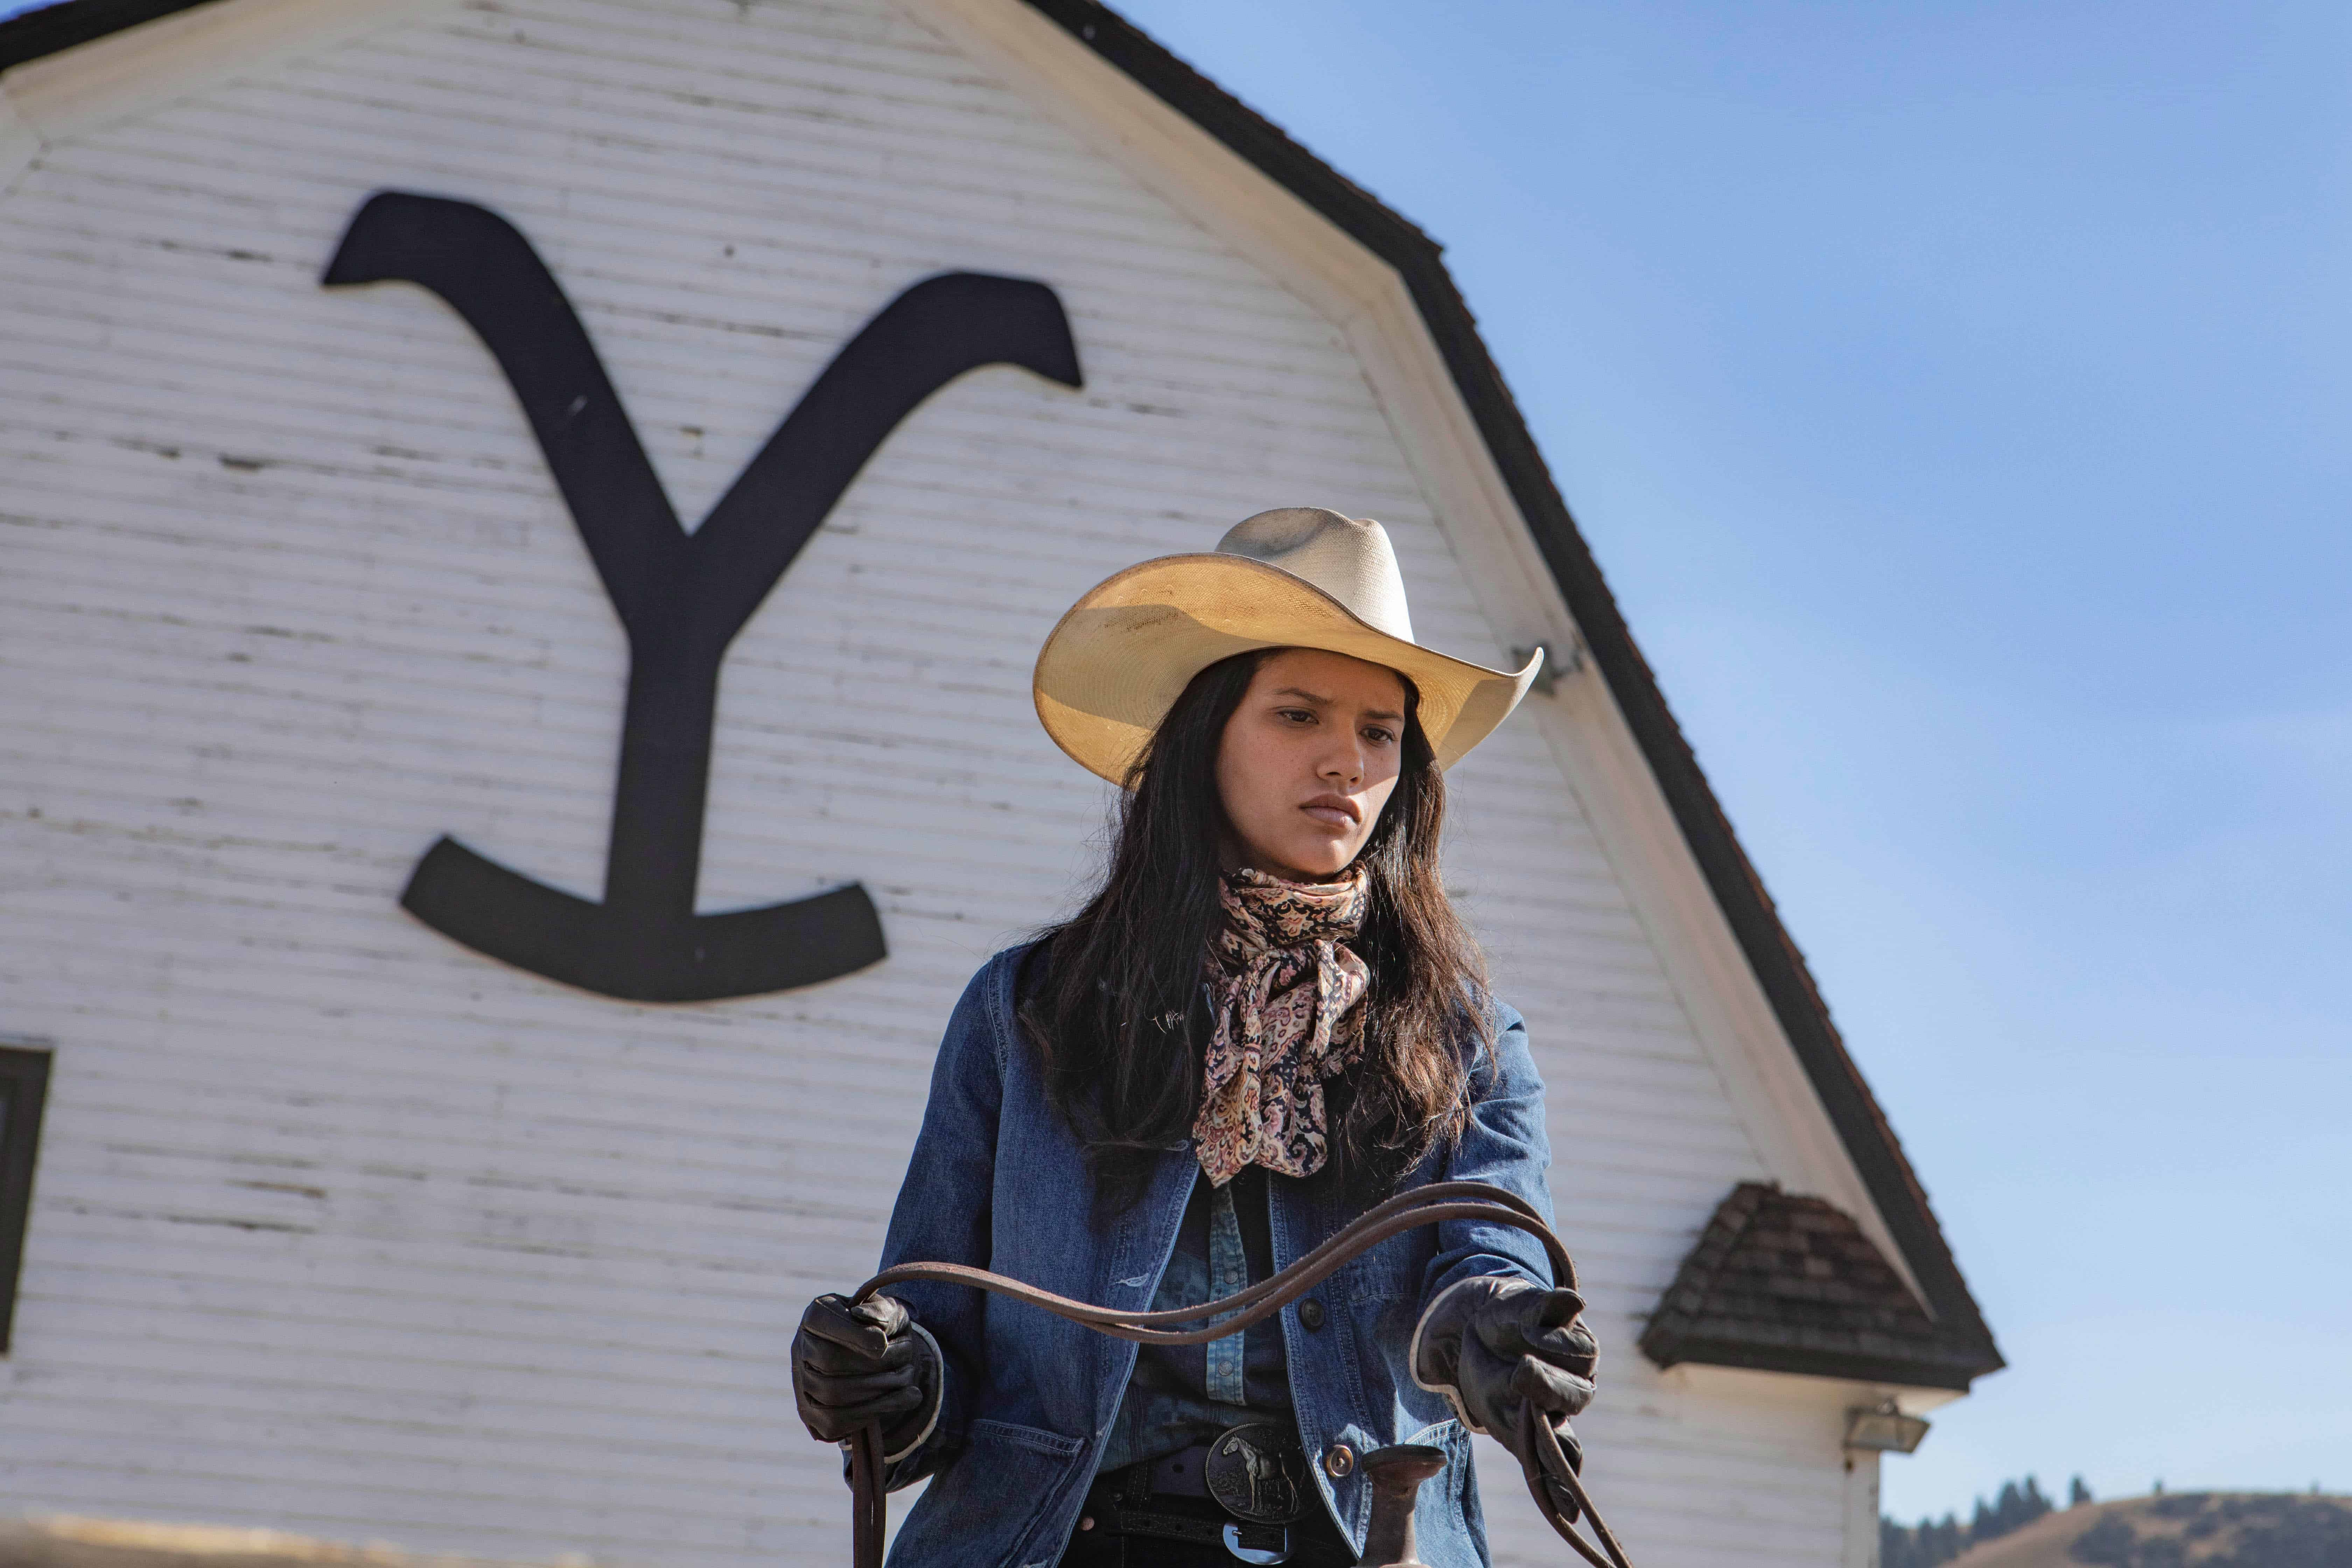 Actress Tanaya Beatty plays the role of Avery on Paramount Network's hit show, Yellowstone.